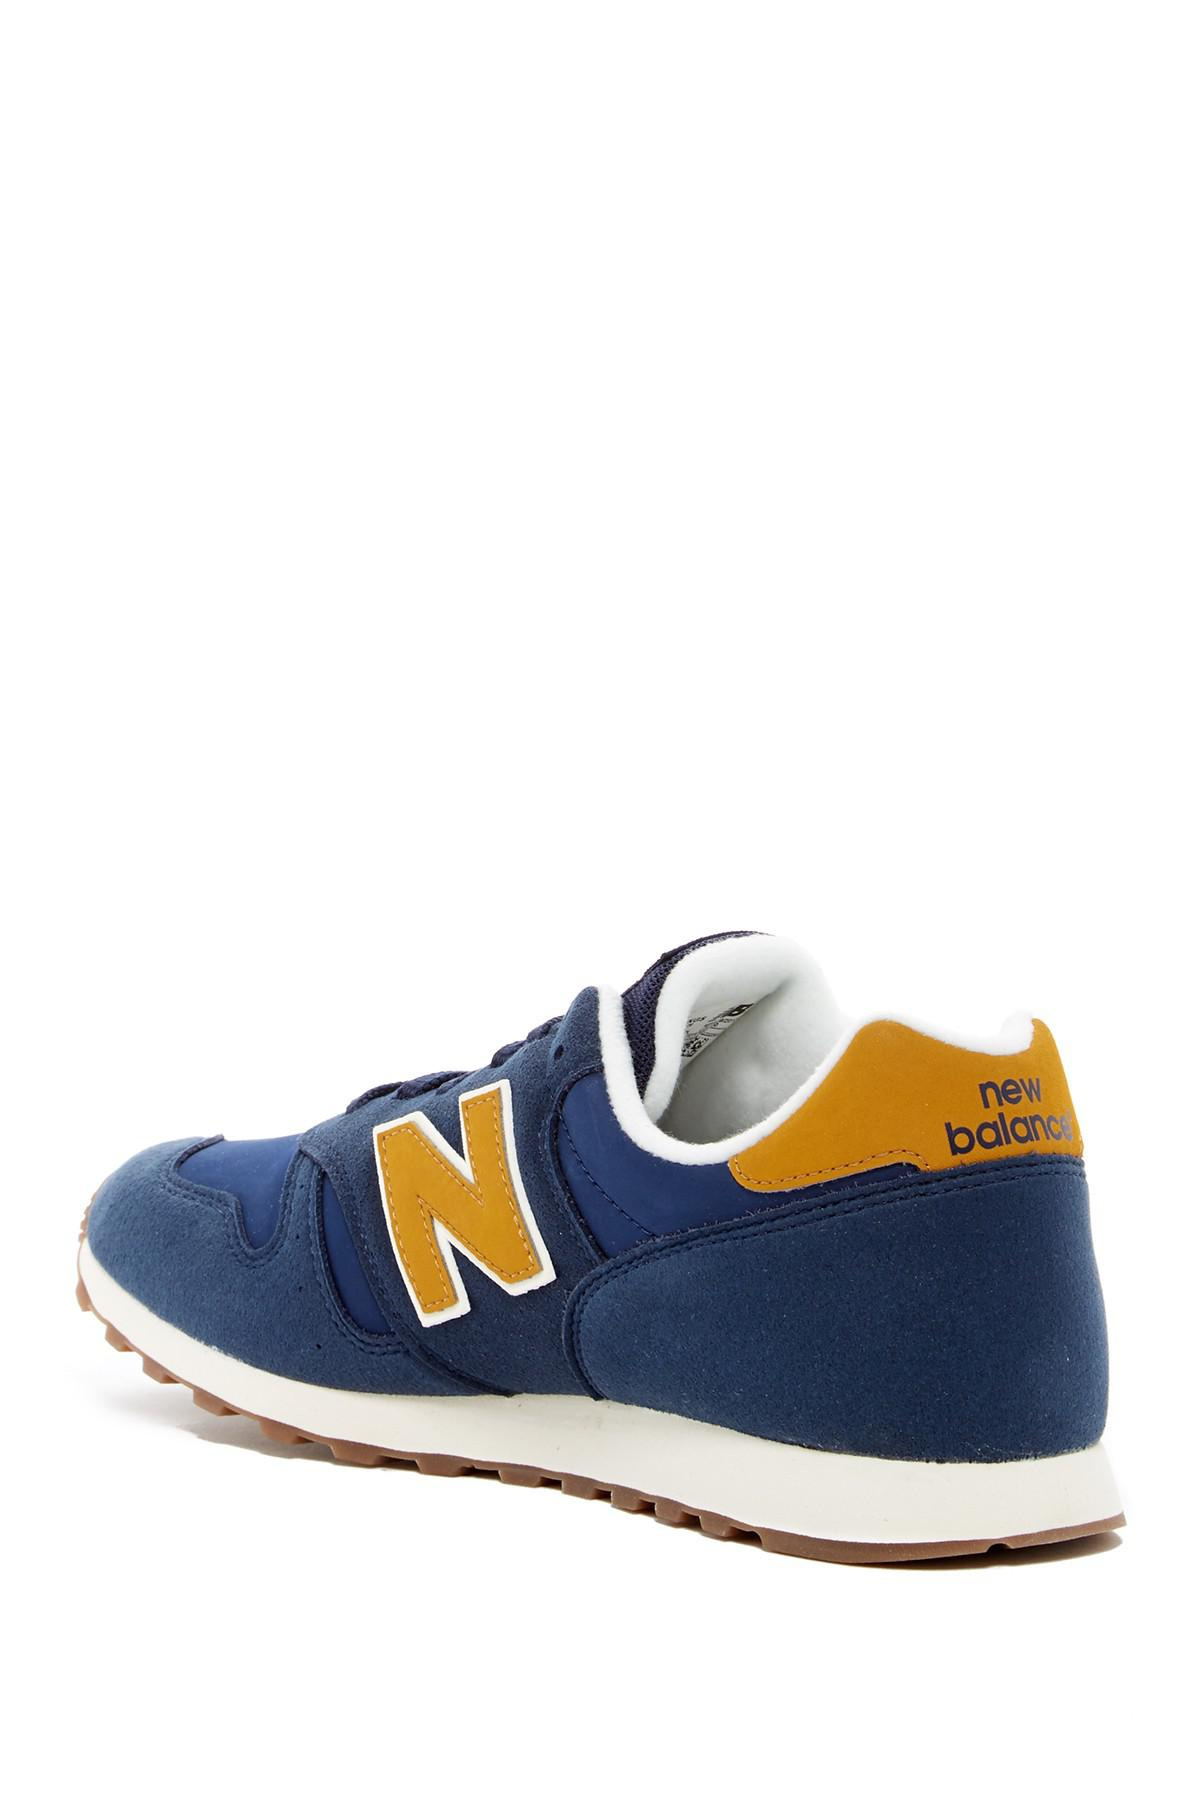 Ml373 Classic Sneaker - Wide Width Available